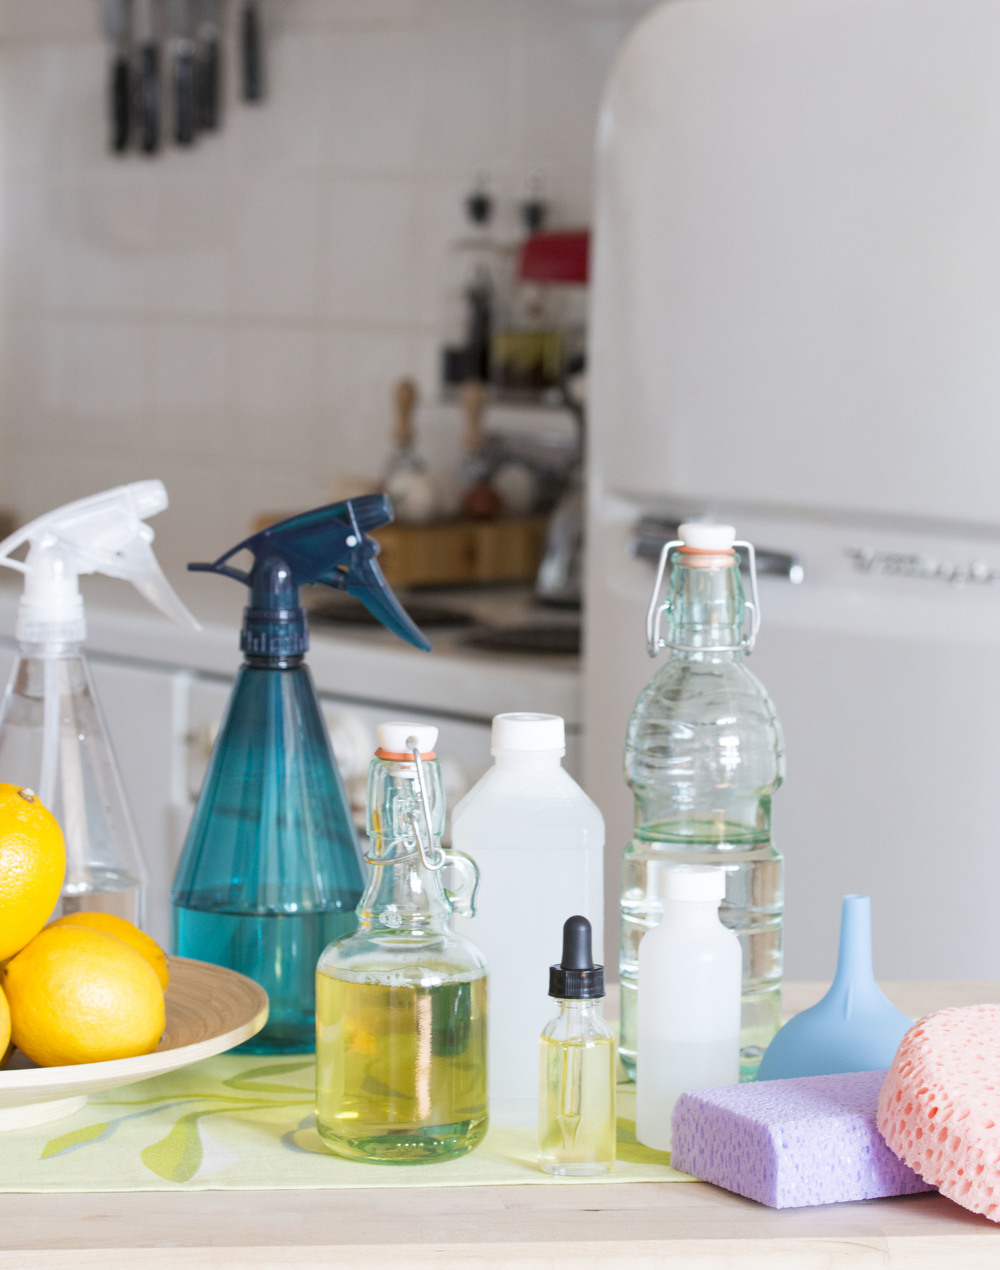 lemon scented multi-purpose cleaners #naturalproducts #householdcleaners #DIY | RECIPE on hotforfoodblog.com